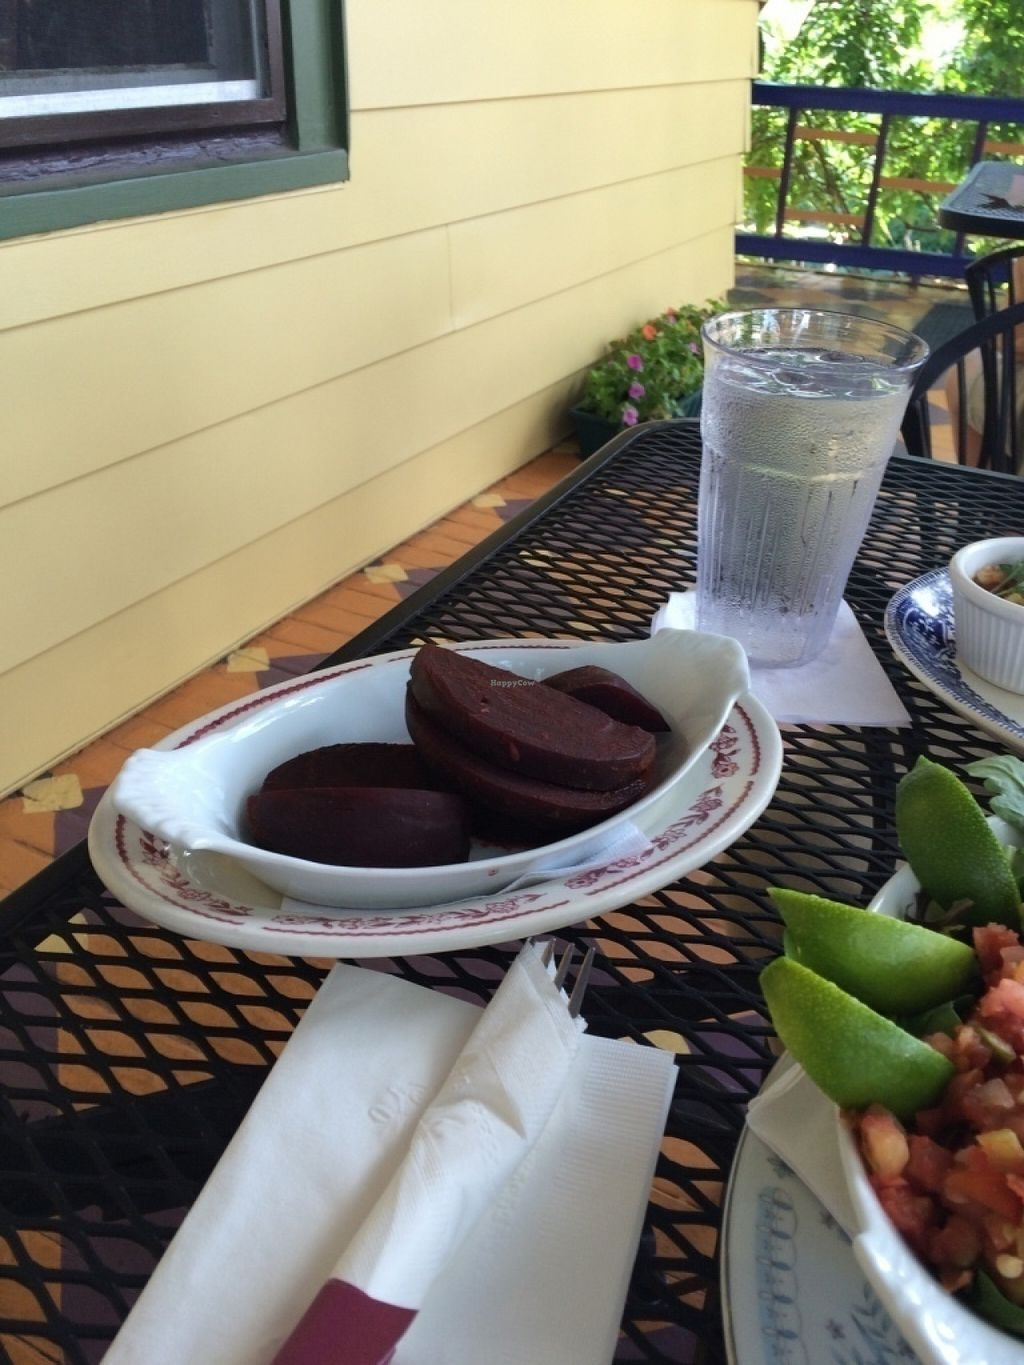 """Photo of Bellefonte Cafe  by <a href=""""/members/profile/VeganVegabond"""">VeganVegabond</a> <br/>Side of """"curried"""" beats <br/> July 21, 2016  - <a href='/contact/abuse/image/47895/161471'>Report</a>"""